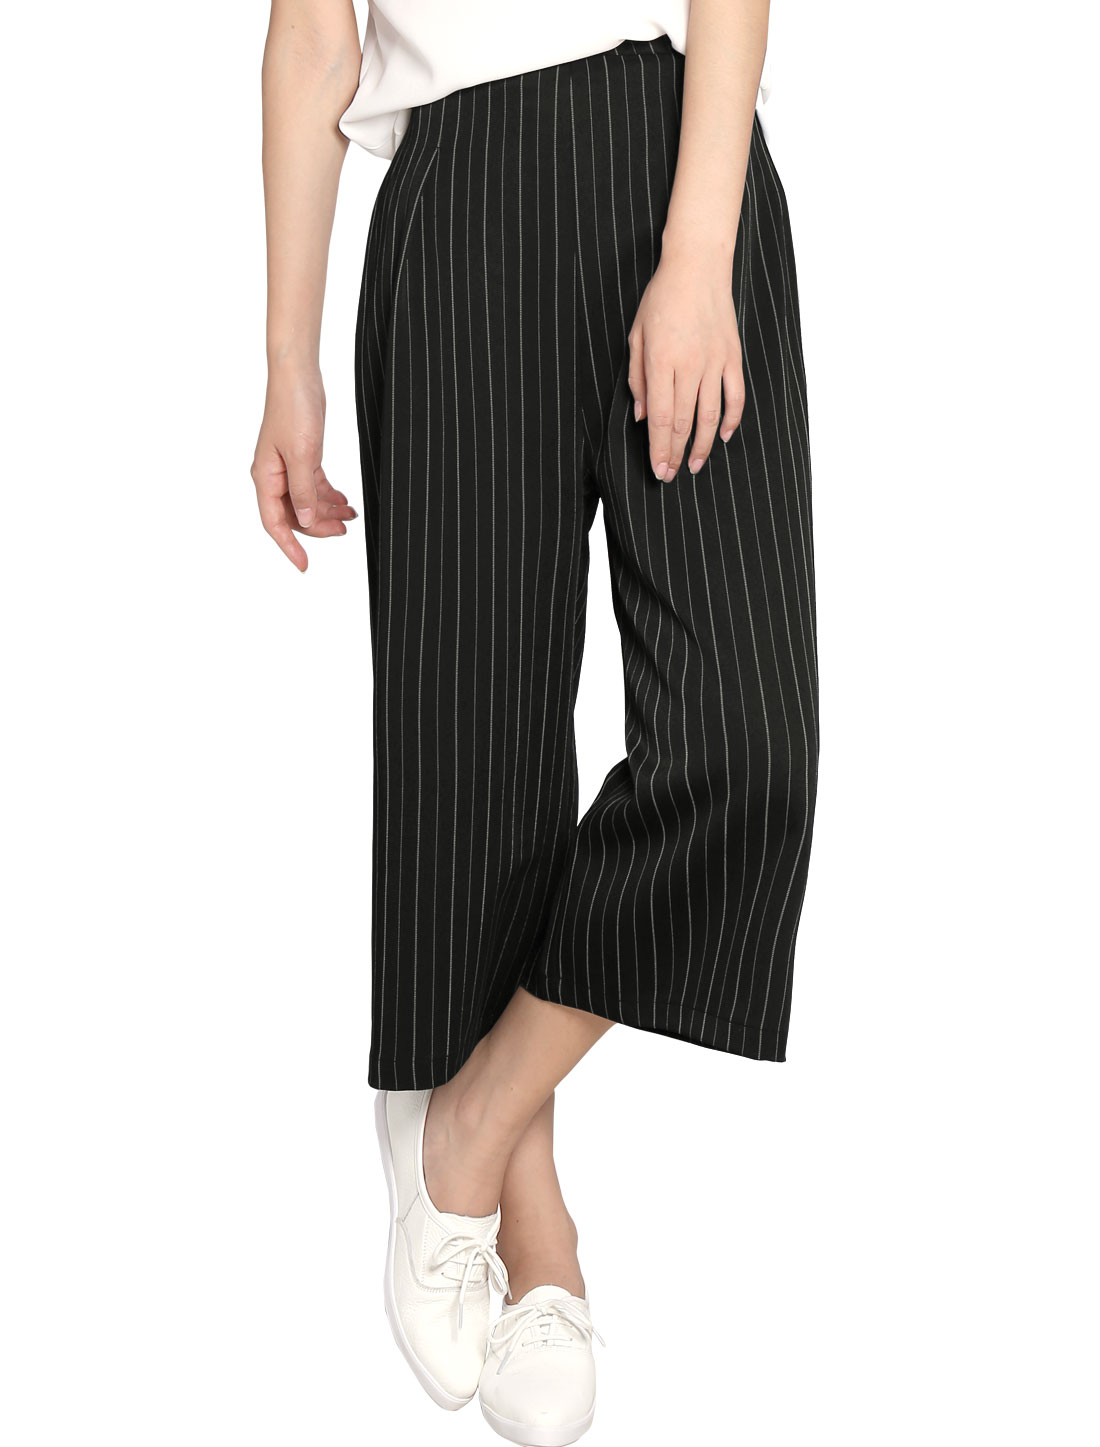 Women Concealed Zipper Side Stripes Capris Culottes Black M